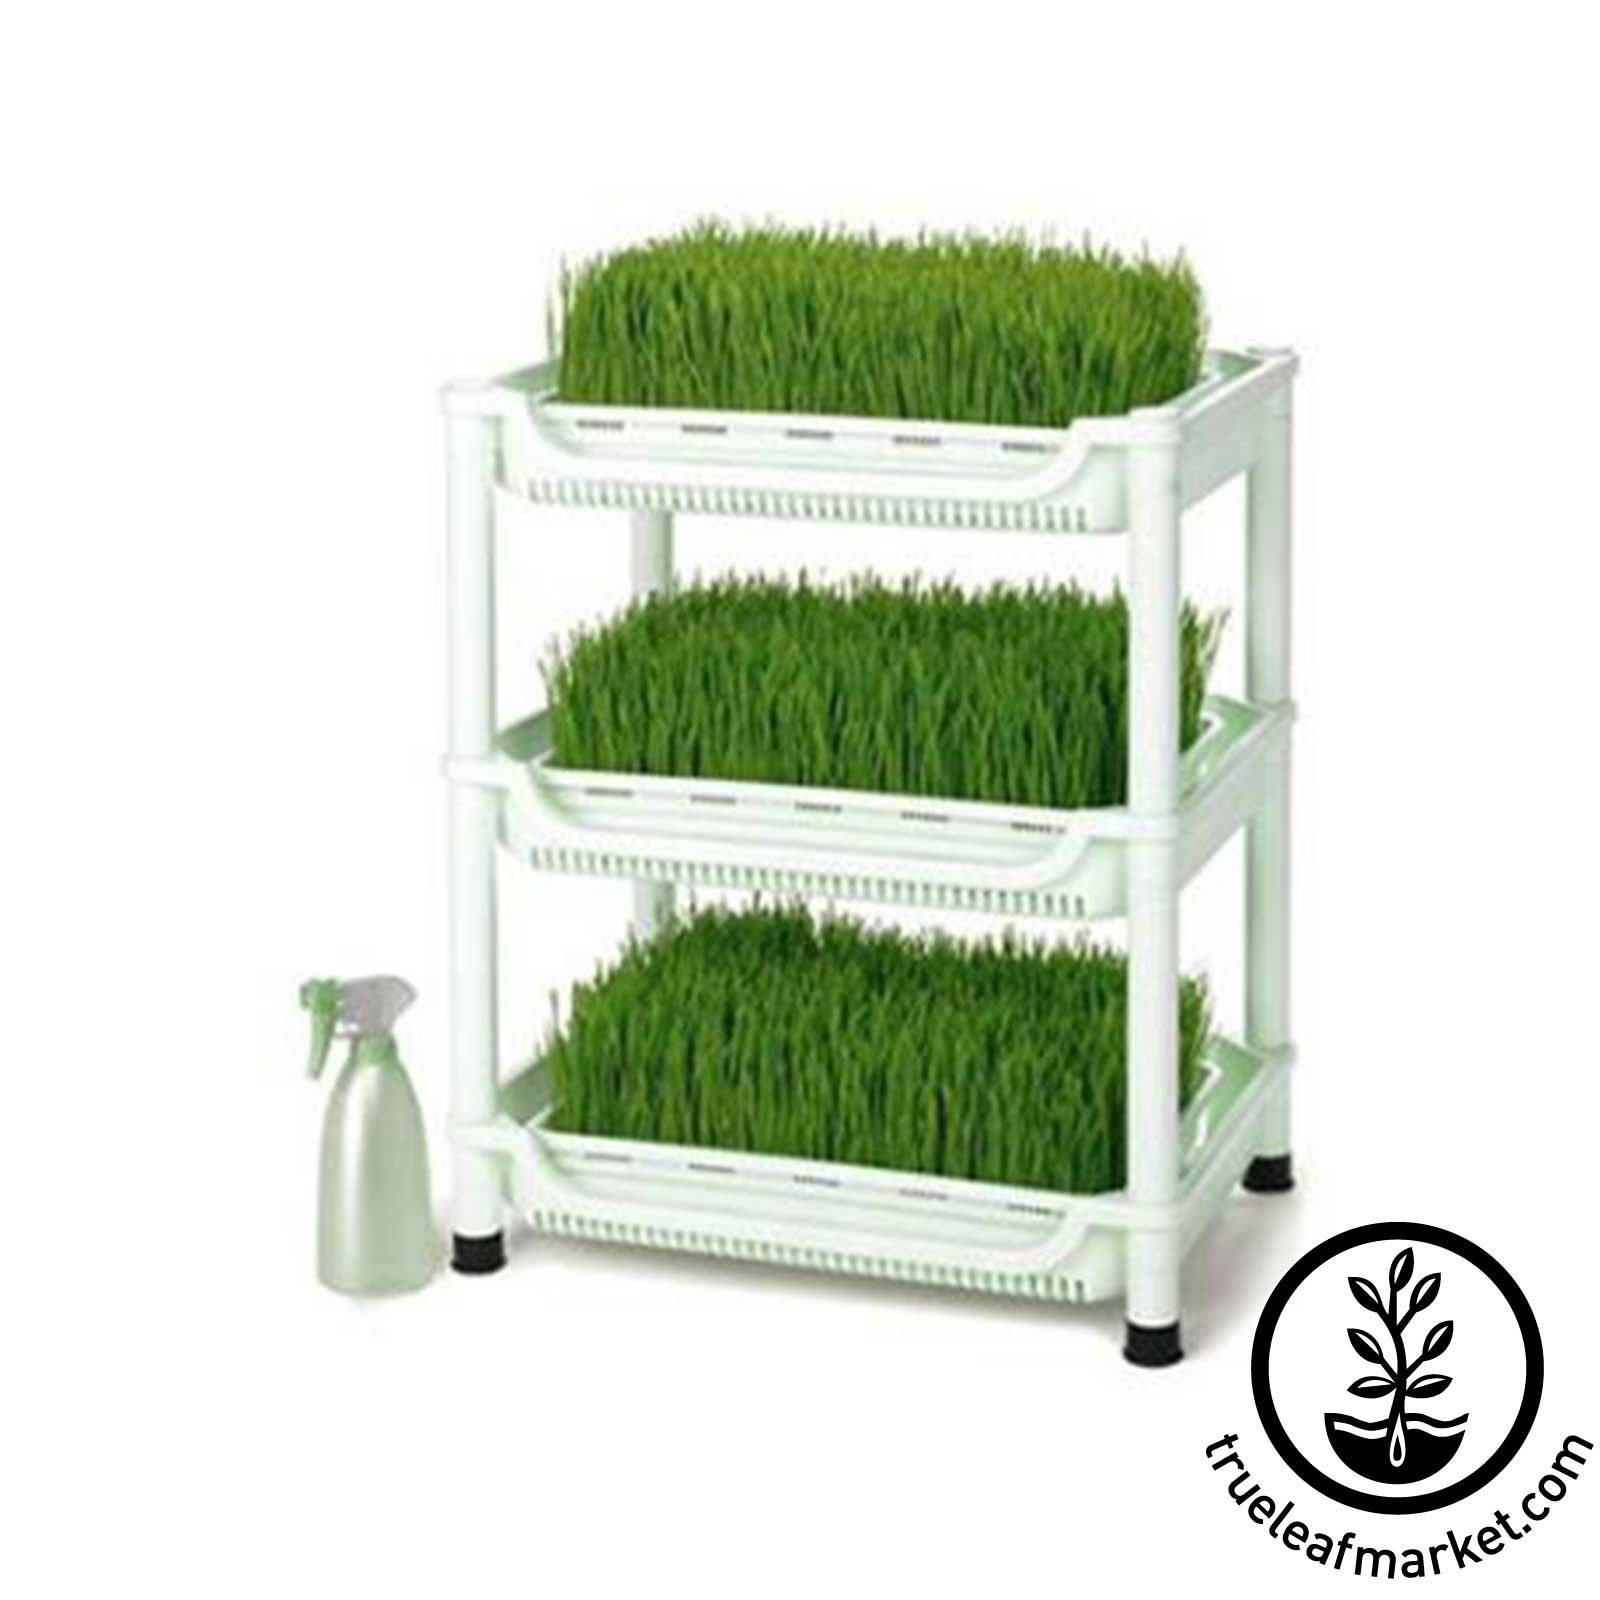 Sproutman SM-350 Wheatgrass Grower